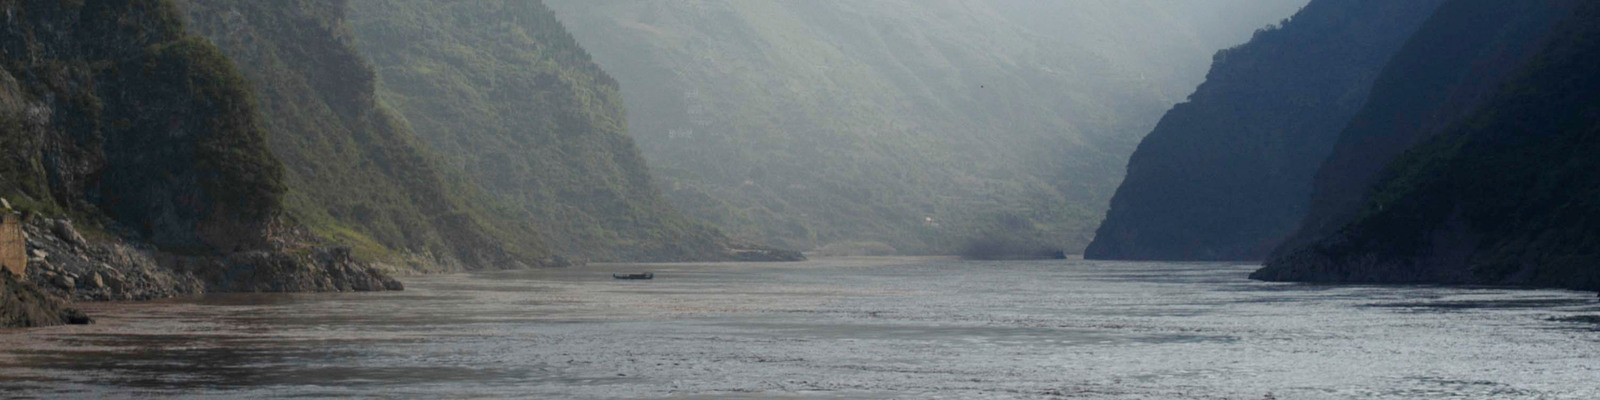 A view of China's Yangtze river and the mountains surronding it